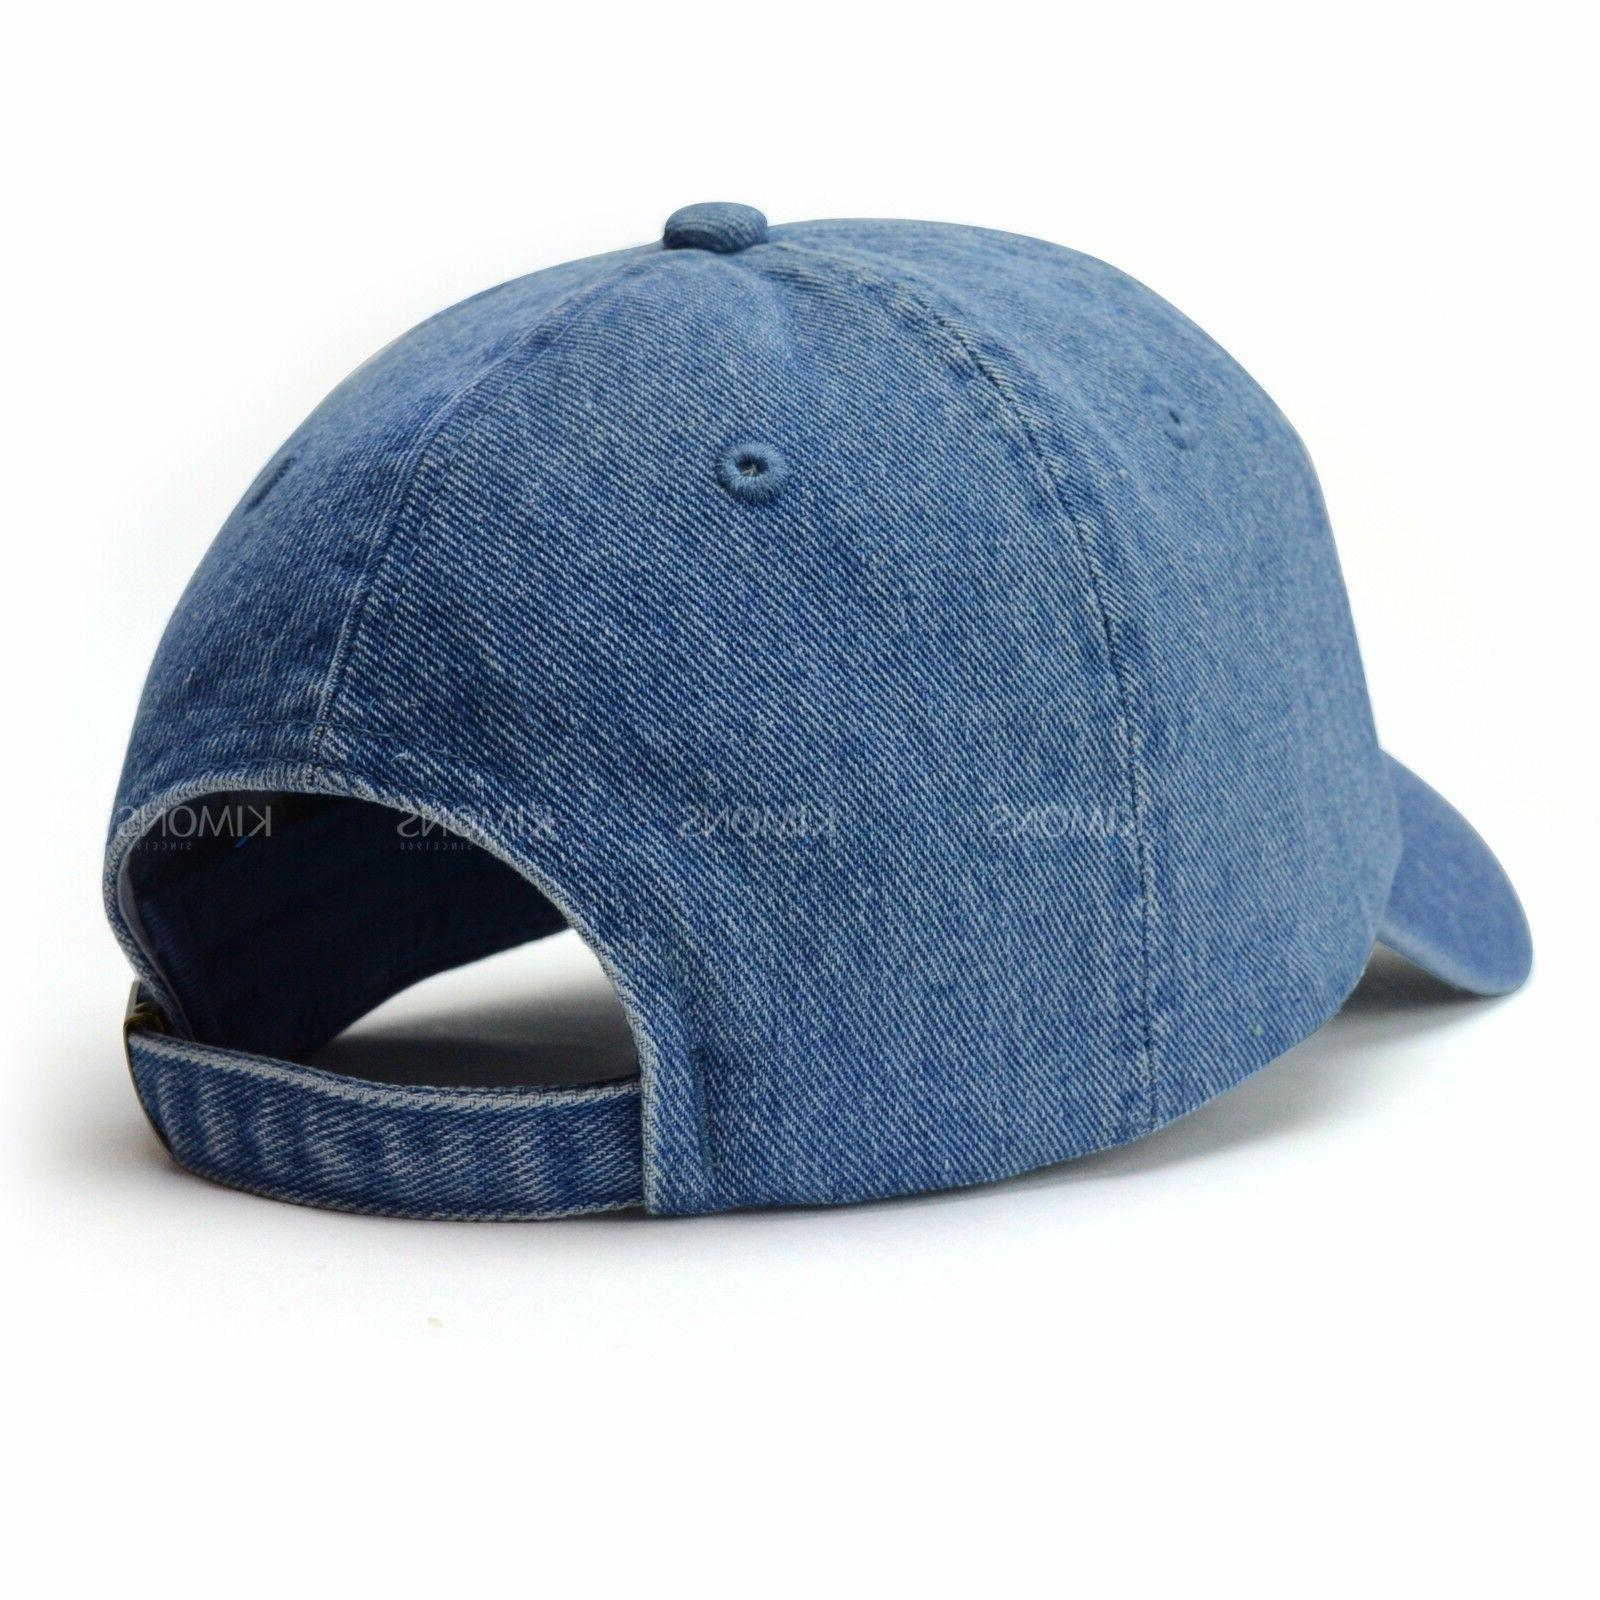 Dyed Washed Cotton New Plain Polo Style Ball Cap Dad 2 Tone